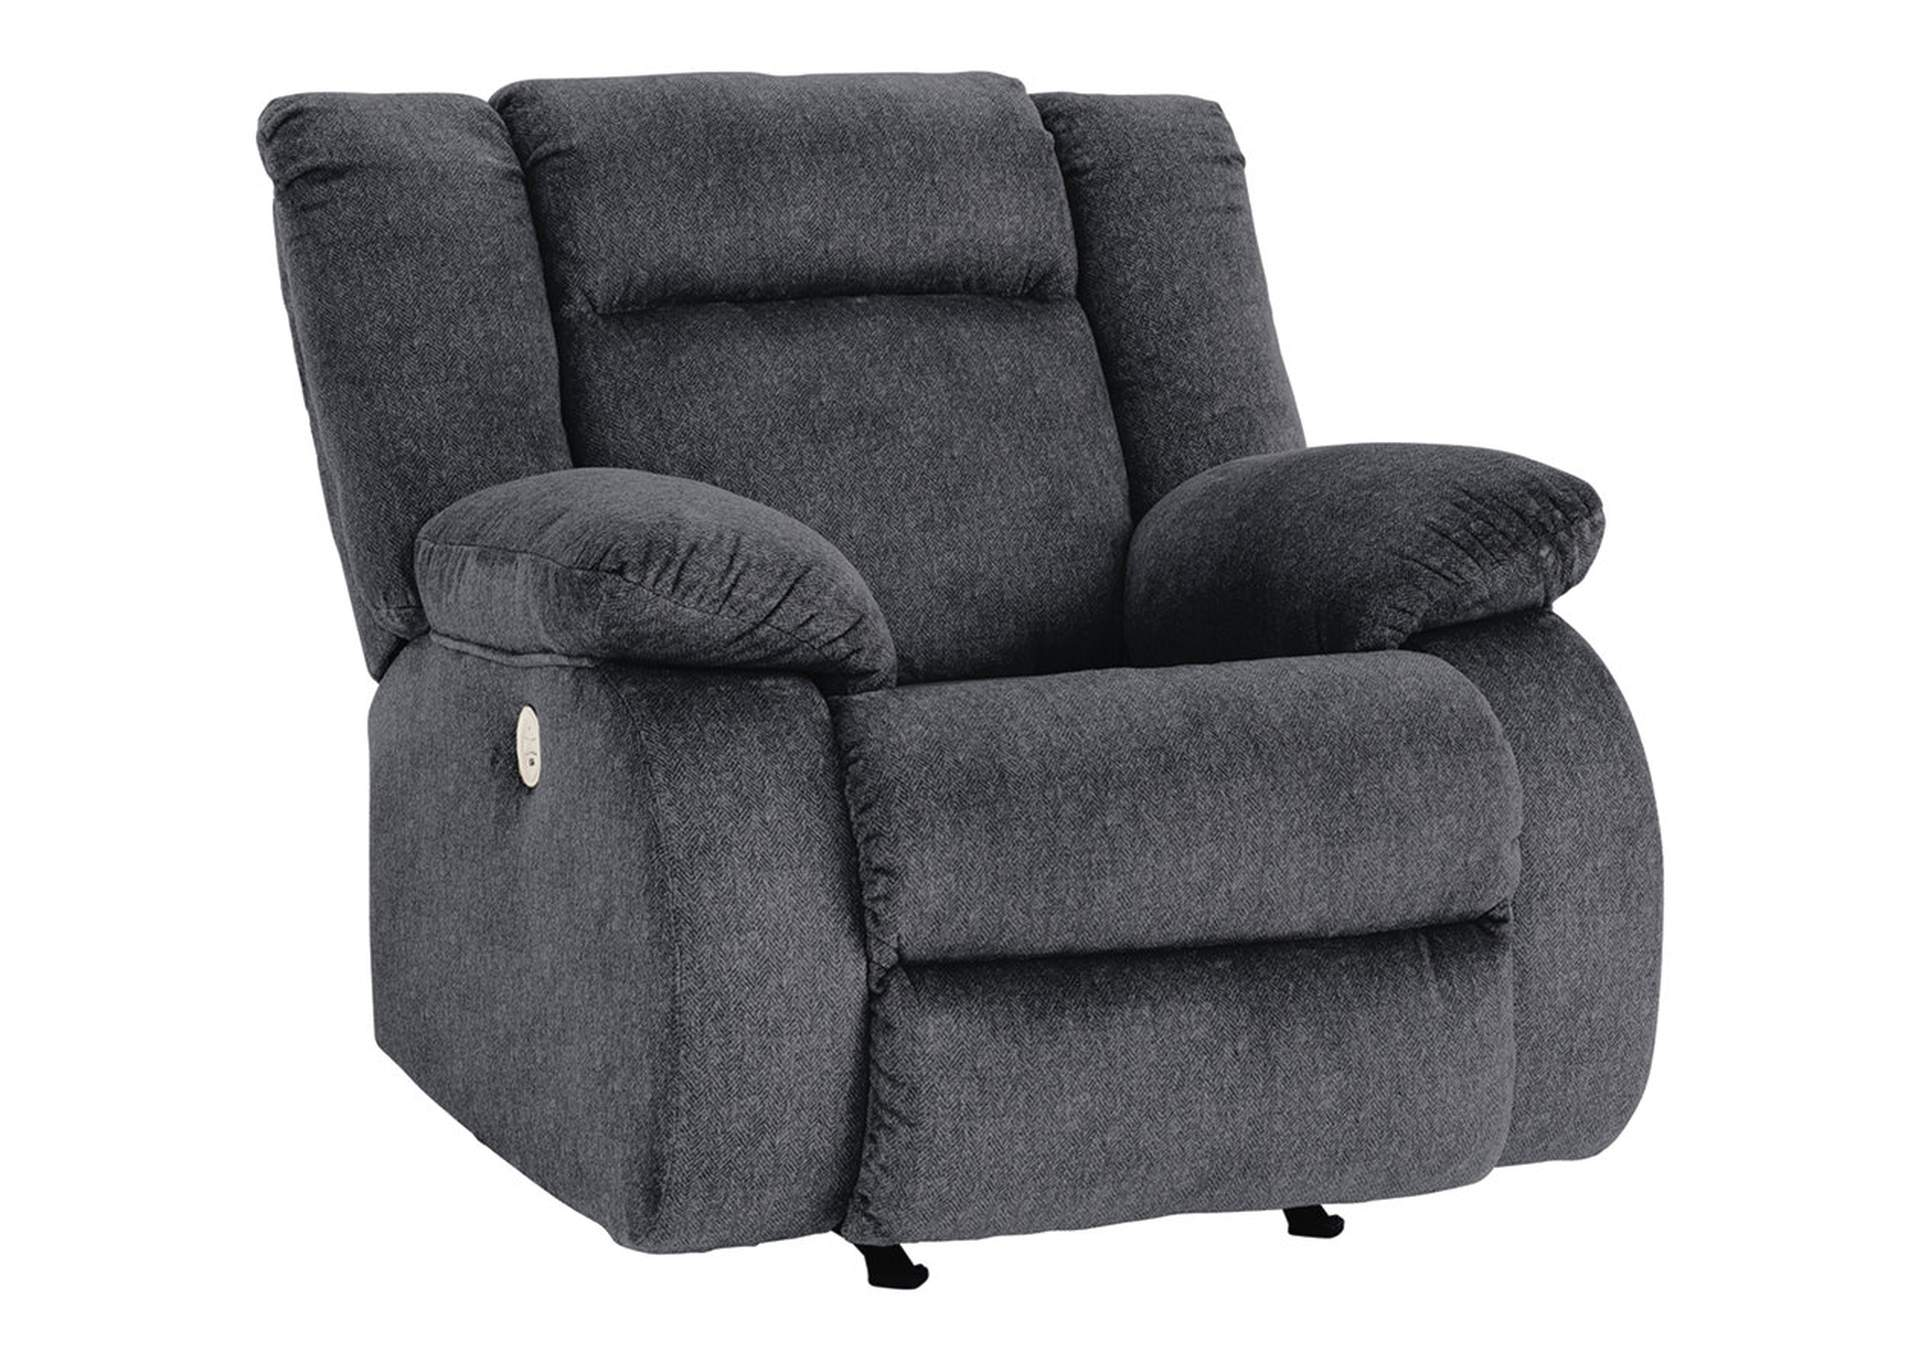 Burkner Power Recliner,Signature Design By Ashley